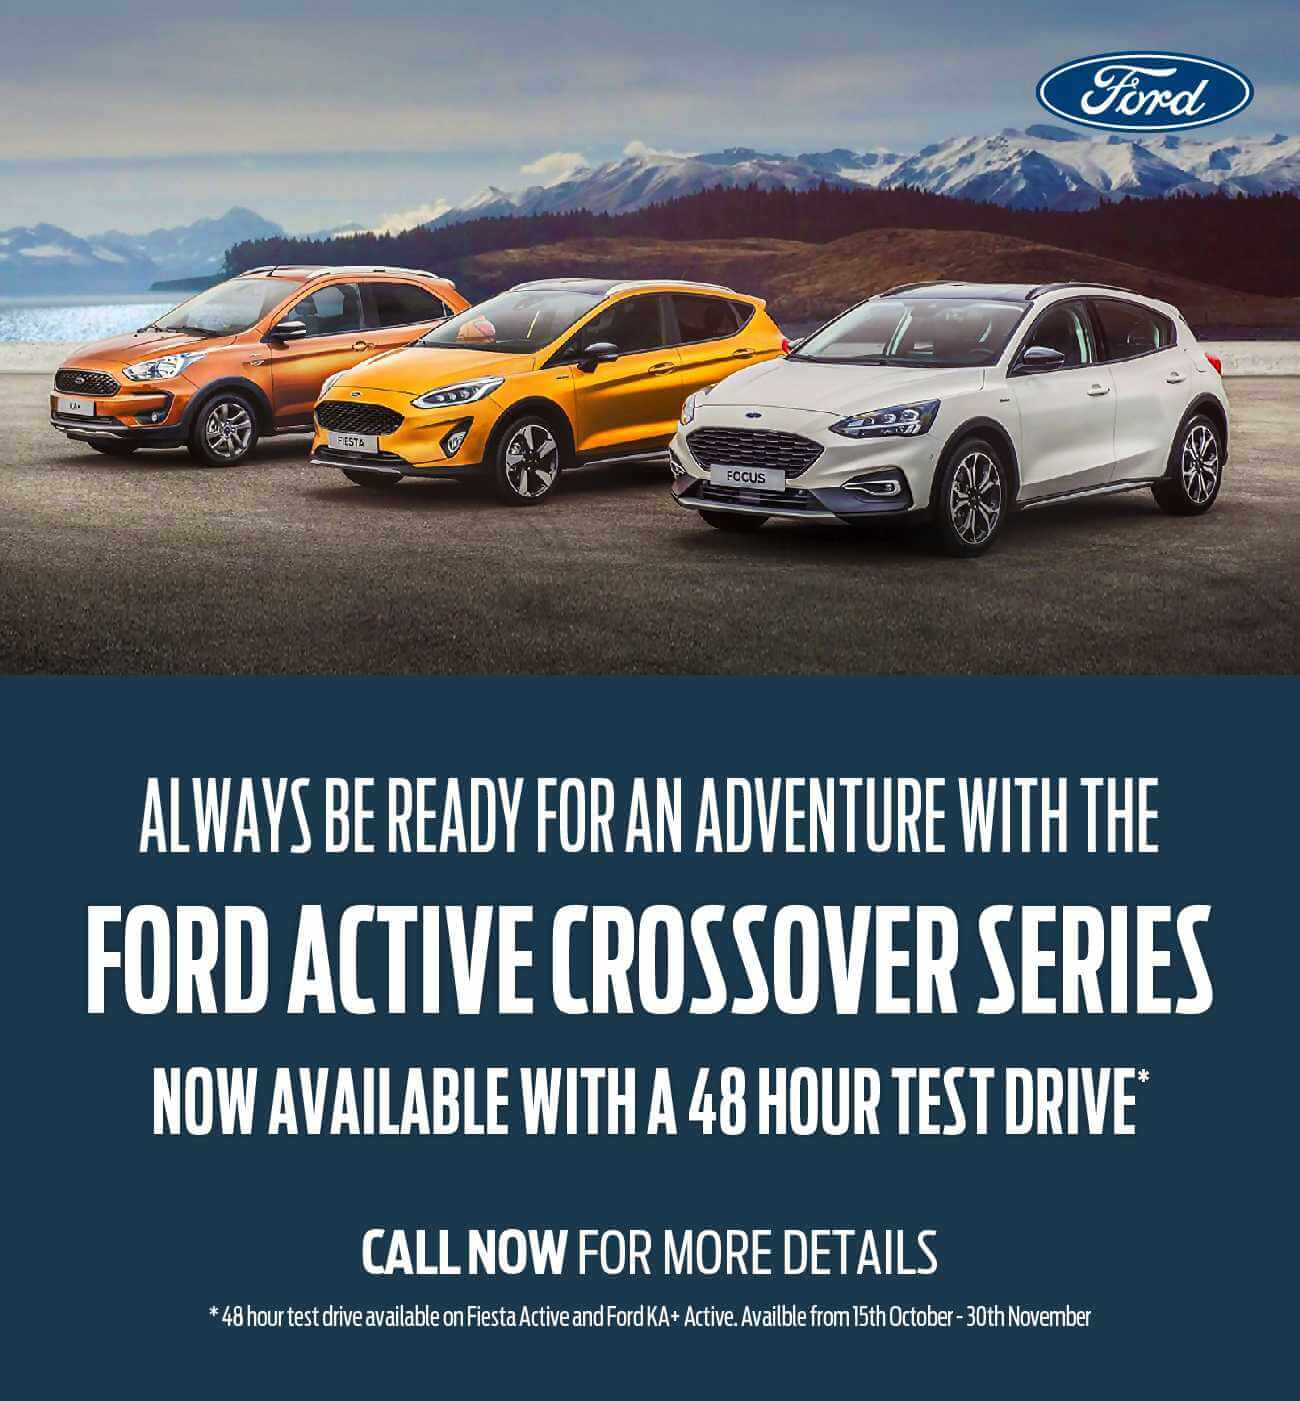 Ford Active Crossover